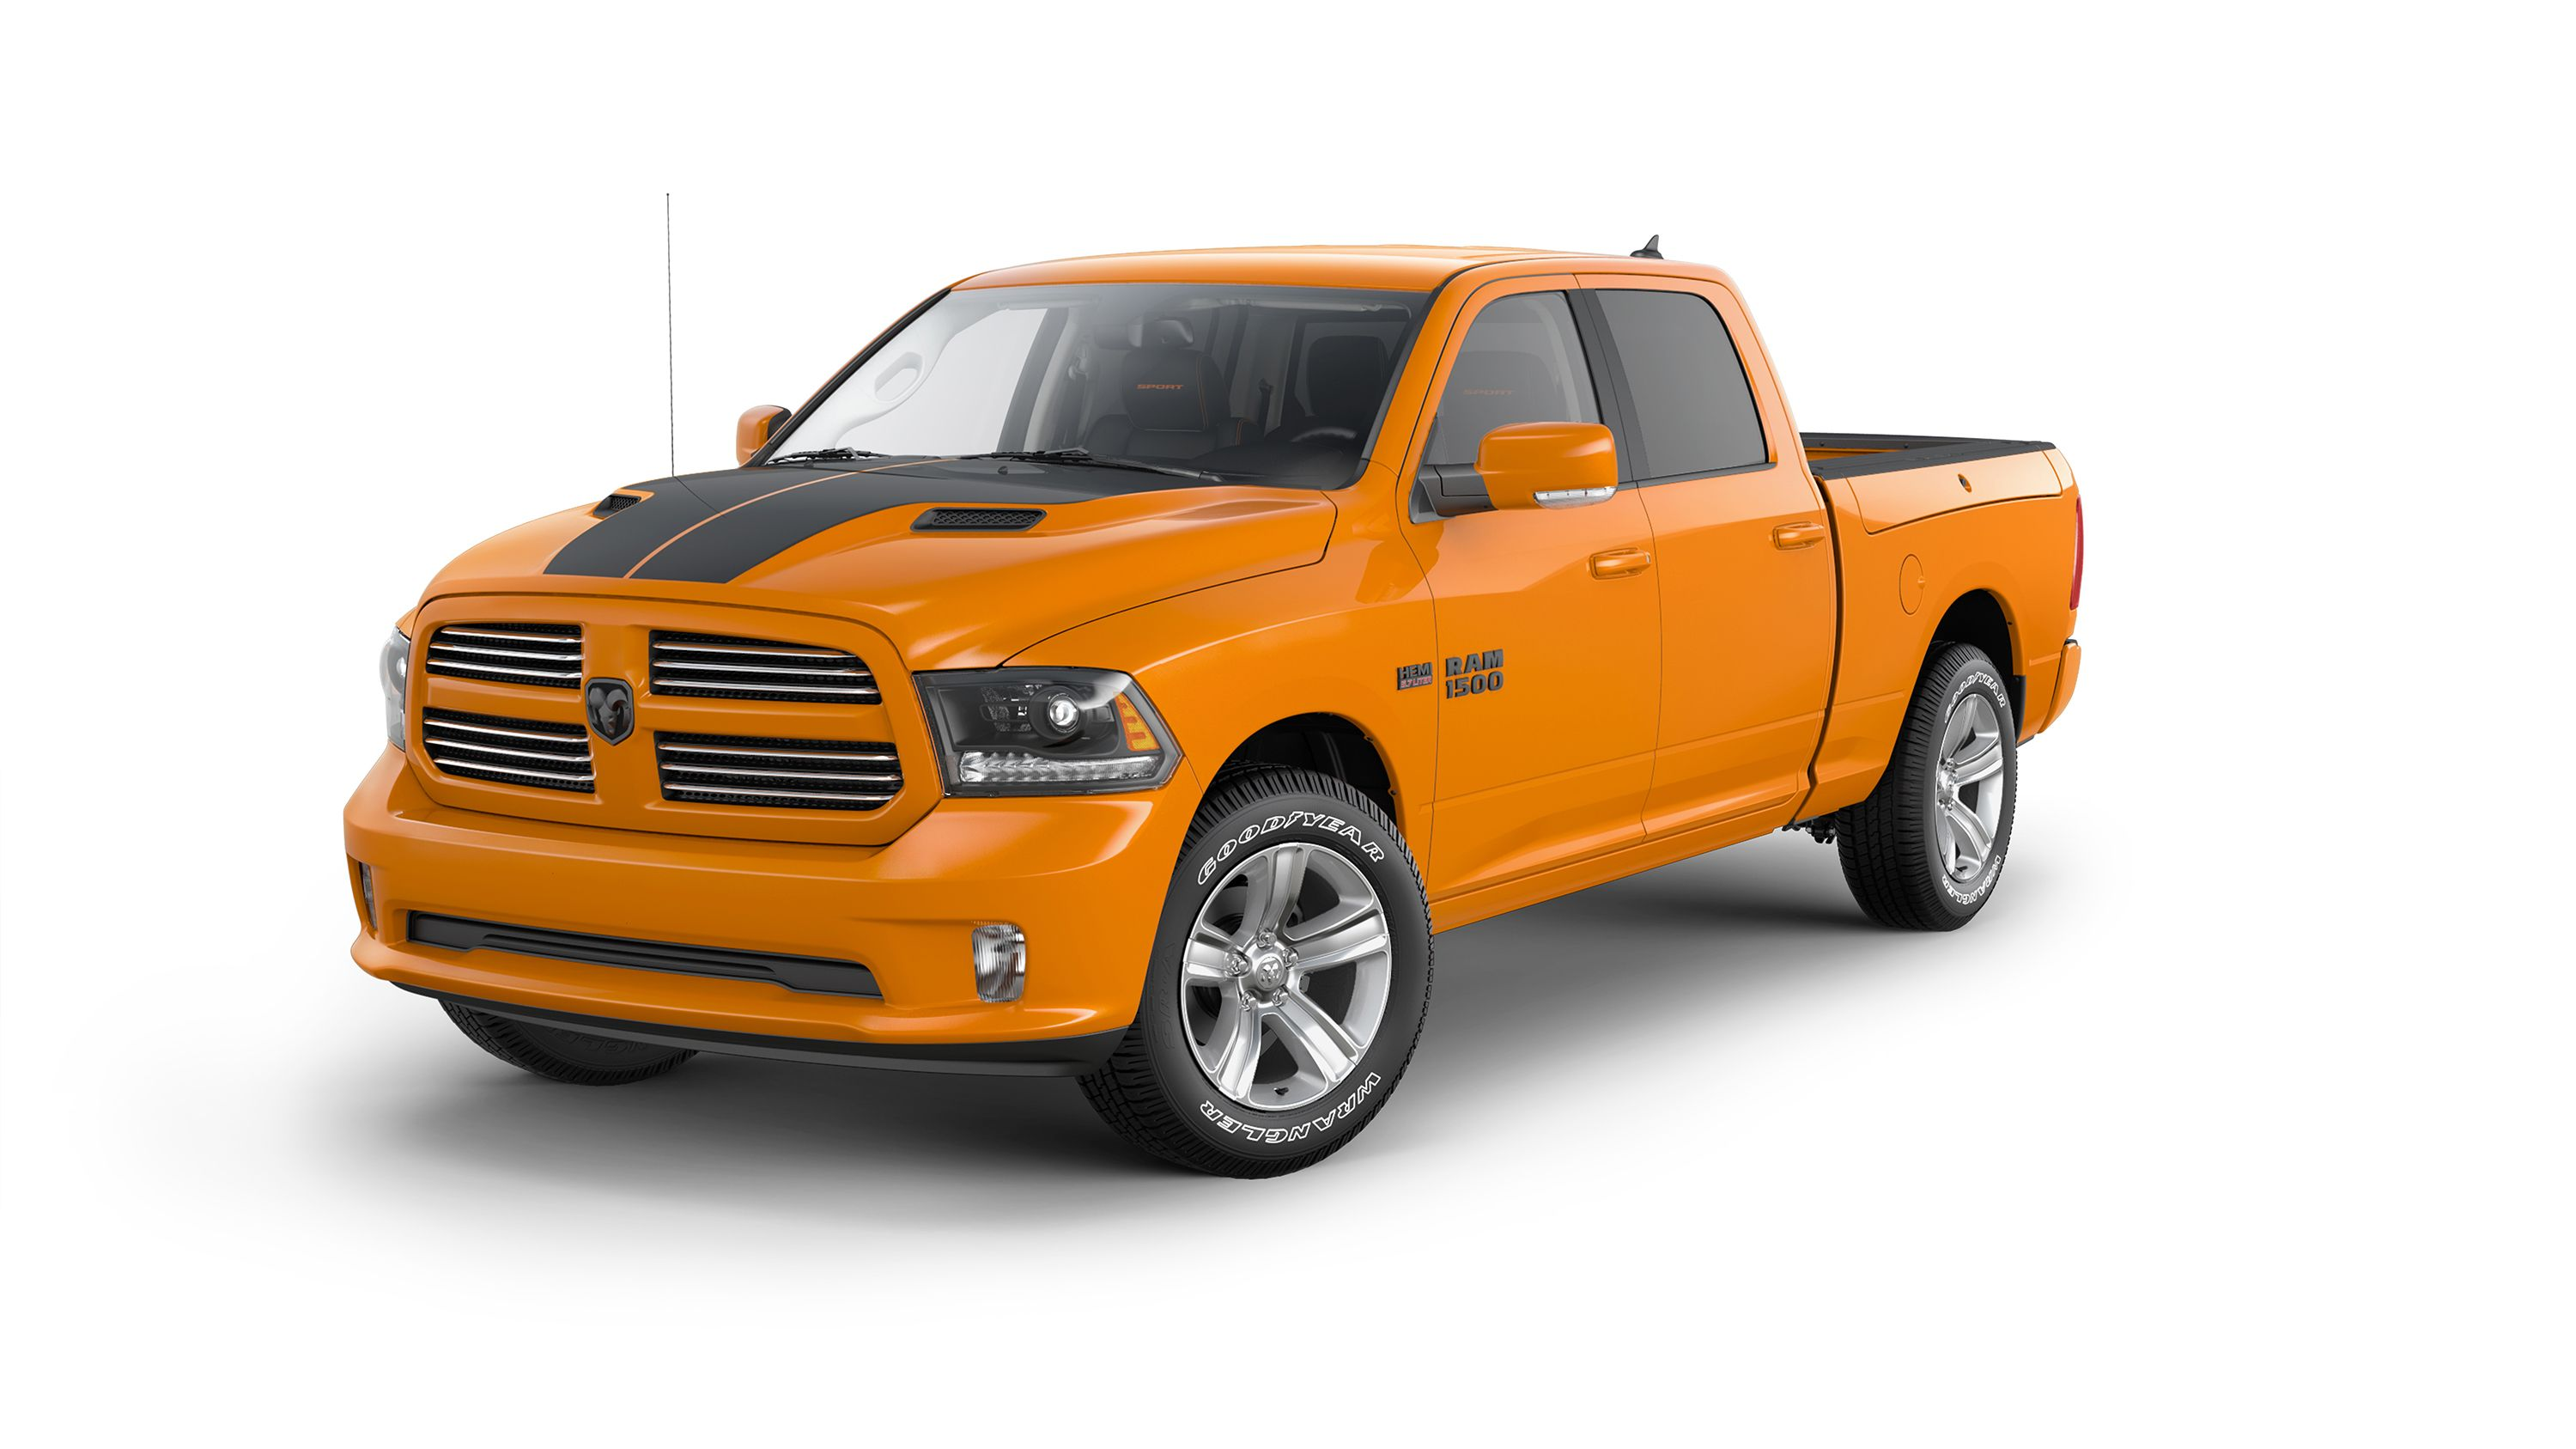 Ram 1500 Ignition Orange Sport Features Unique Interior Colors Body Colored Accents And Limited Edition Bright Orange Paint Ram 1500 Ram Trucks Work Truck